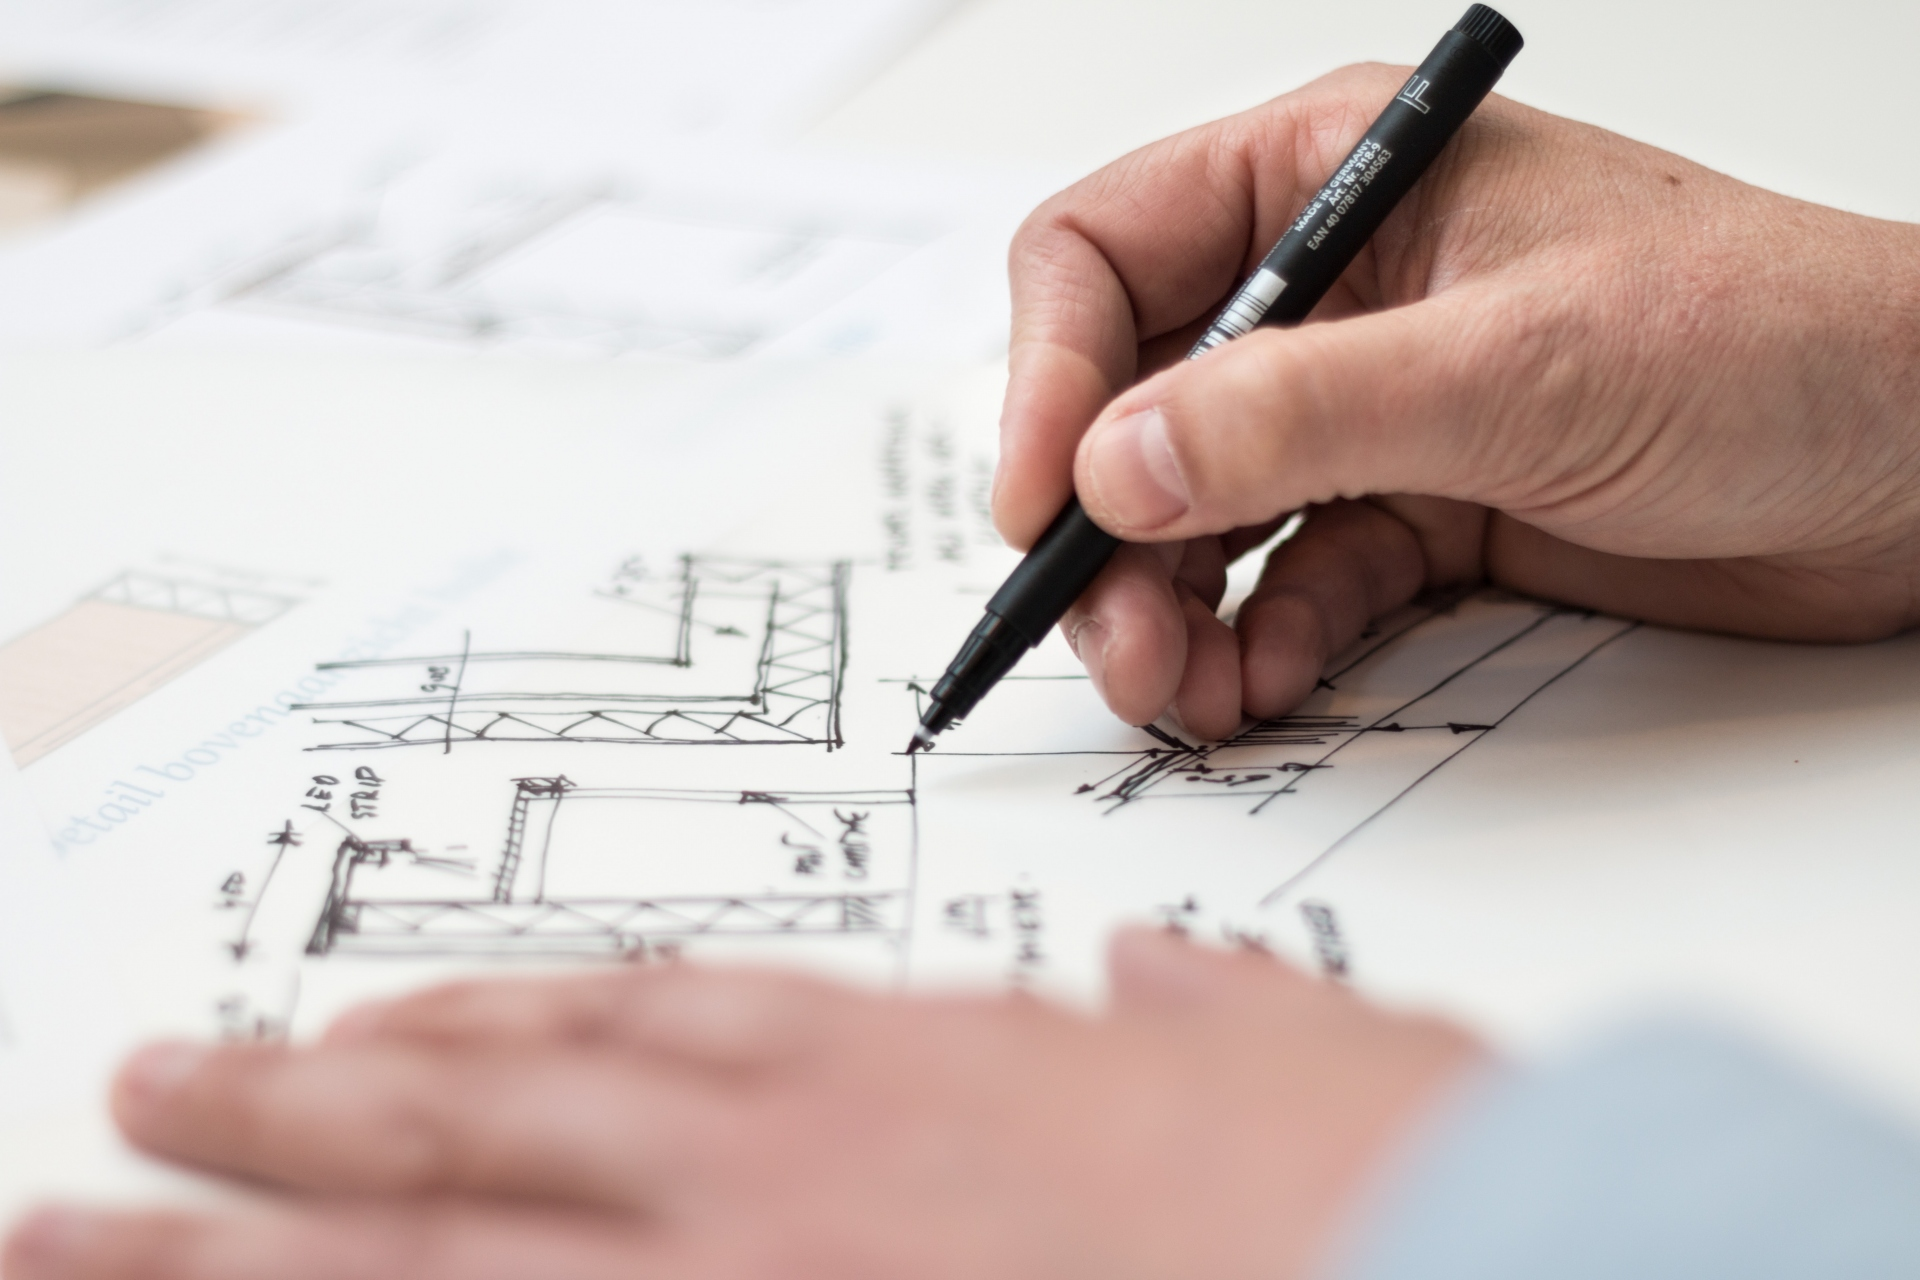 6 Benefits Of Studying Architecture On A Professional Level